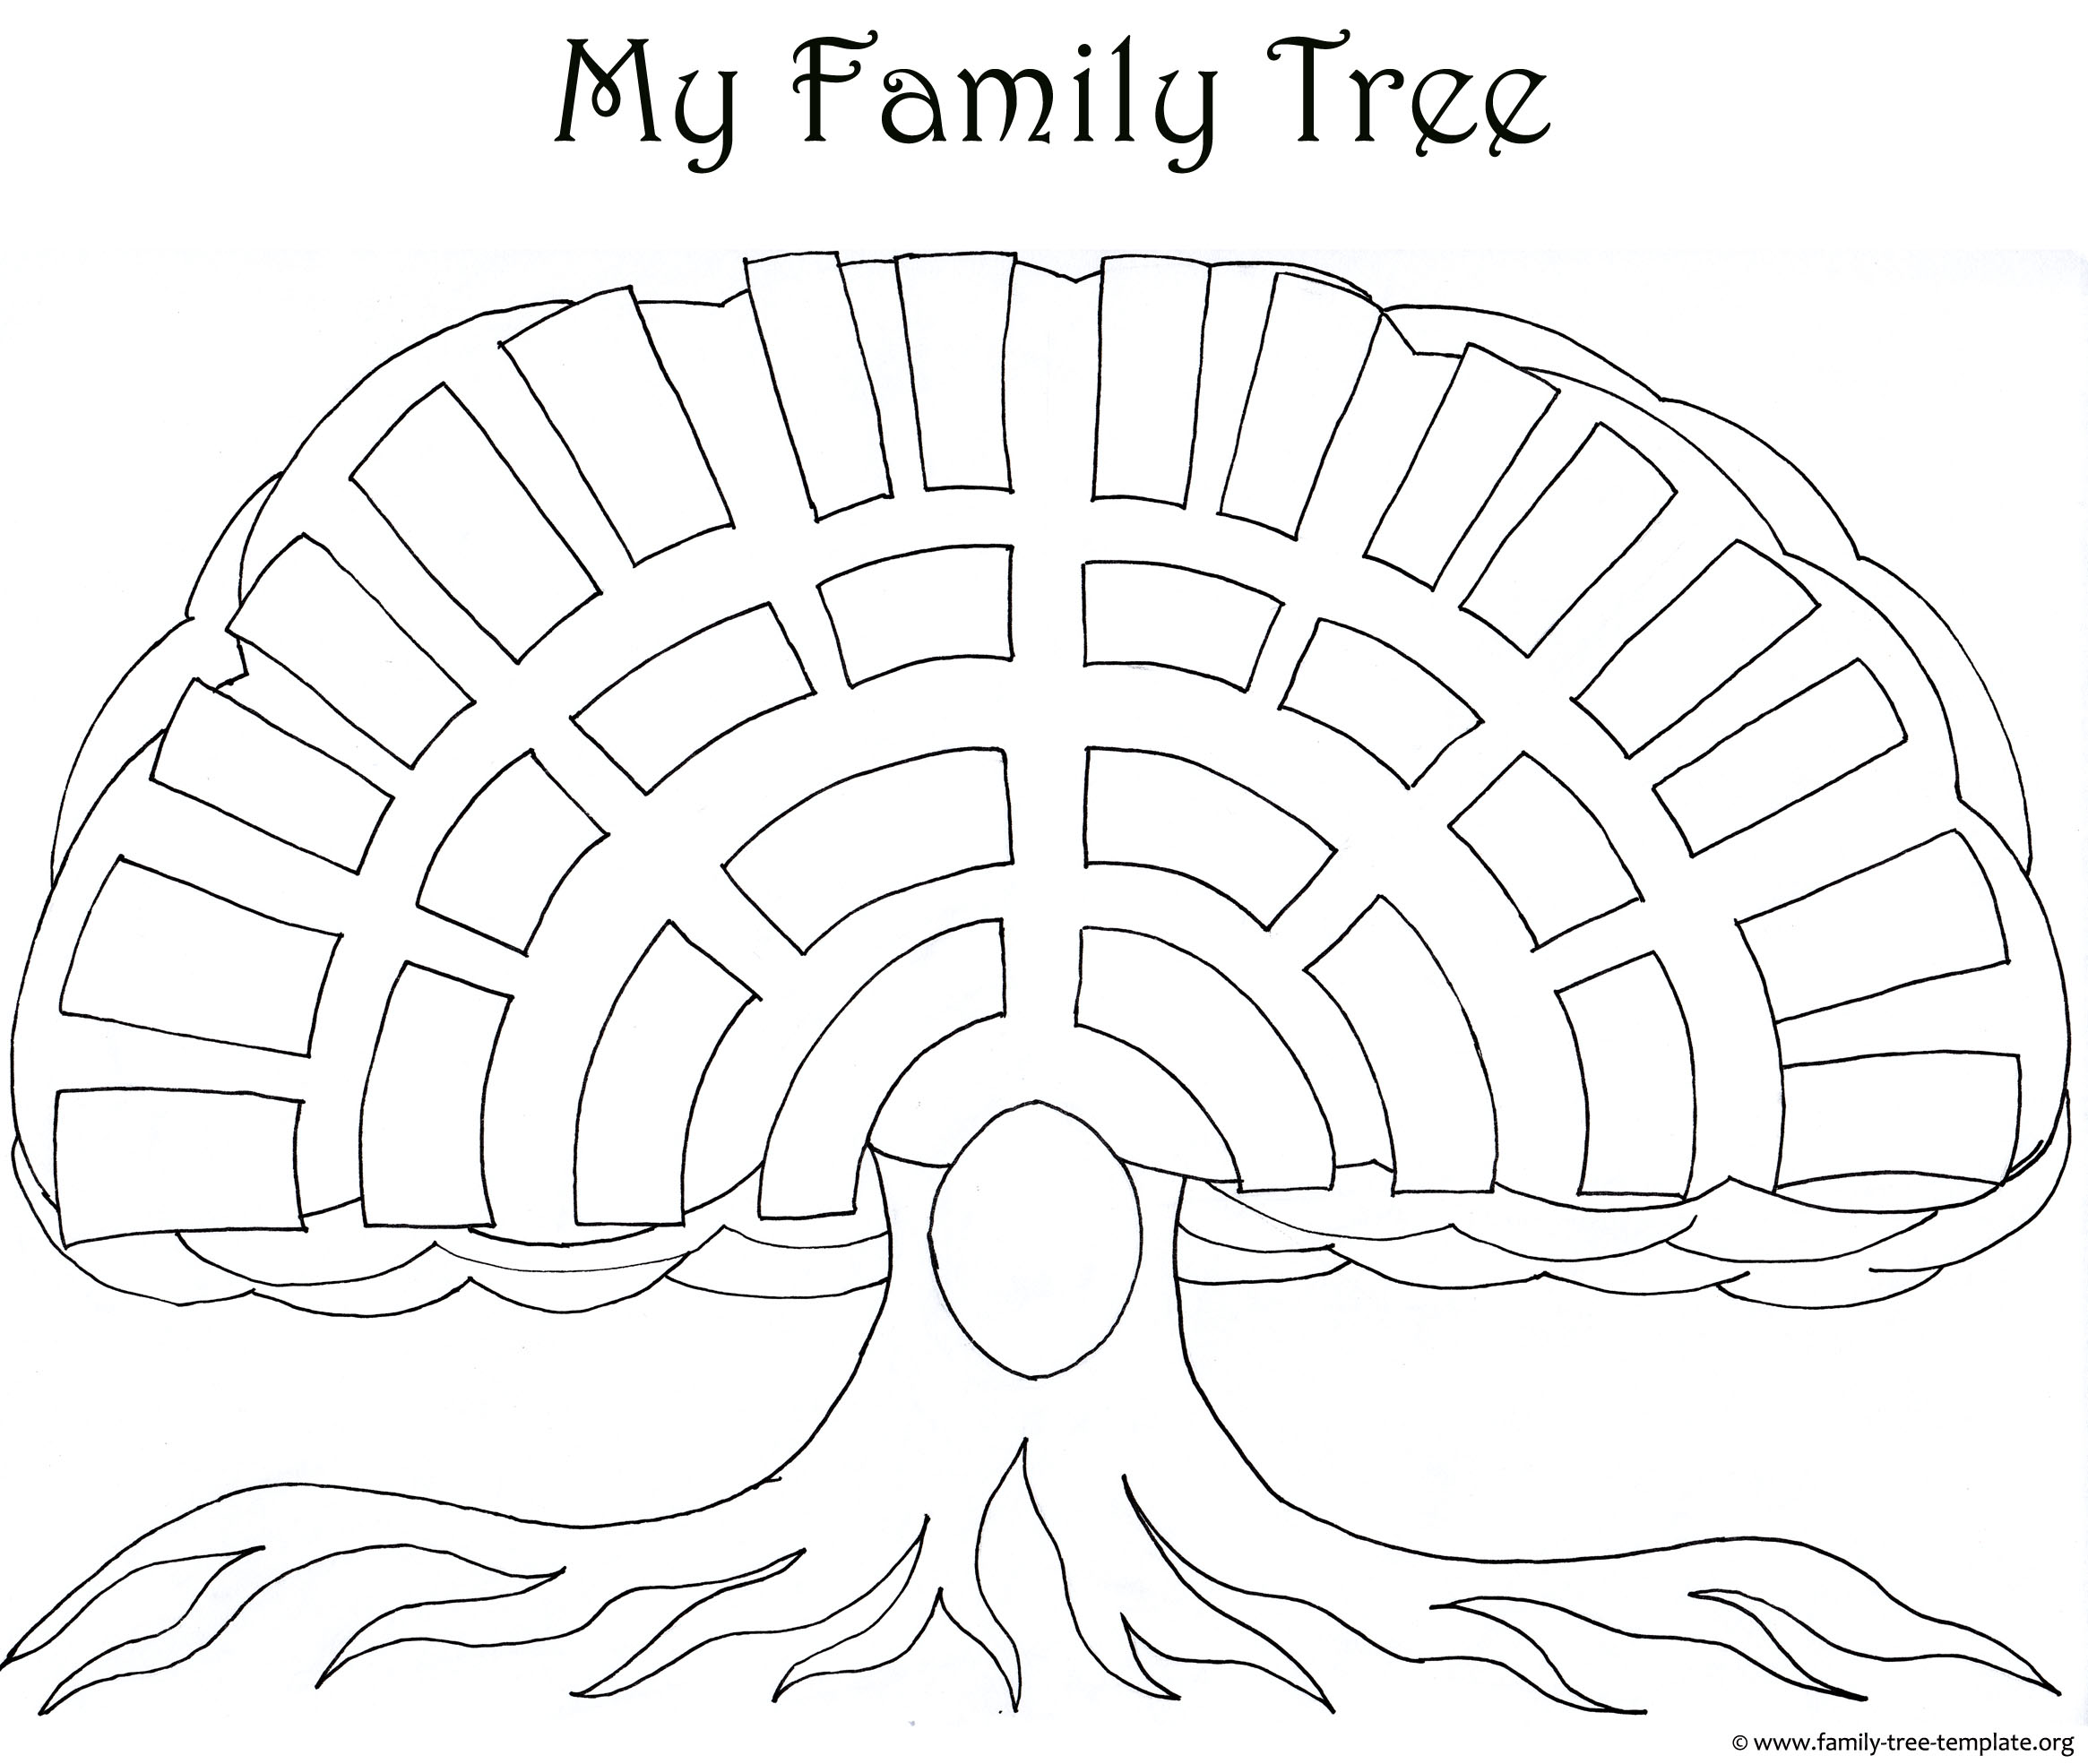 draw a family tree template - family tree drawing easy at free for